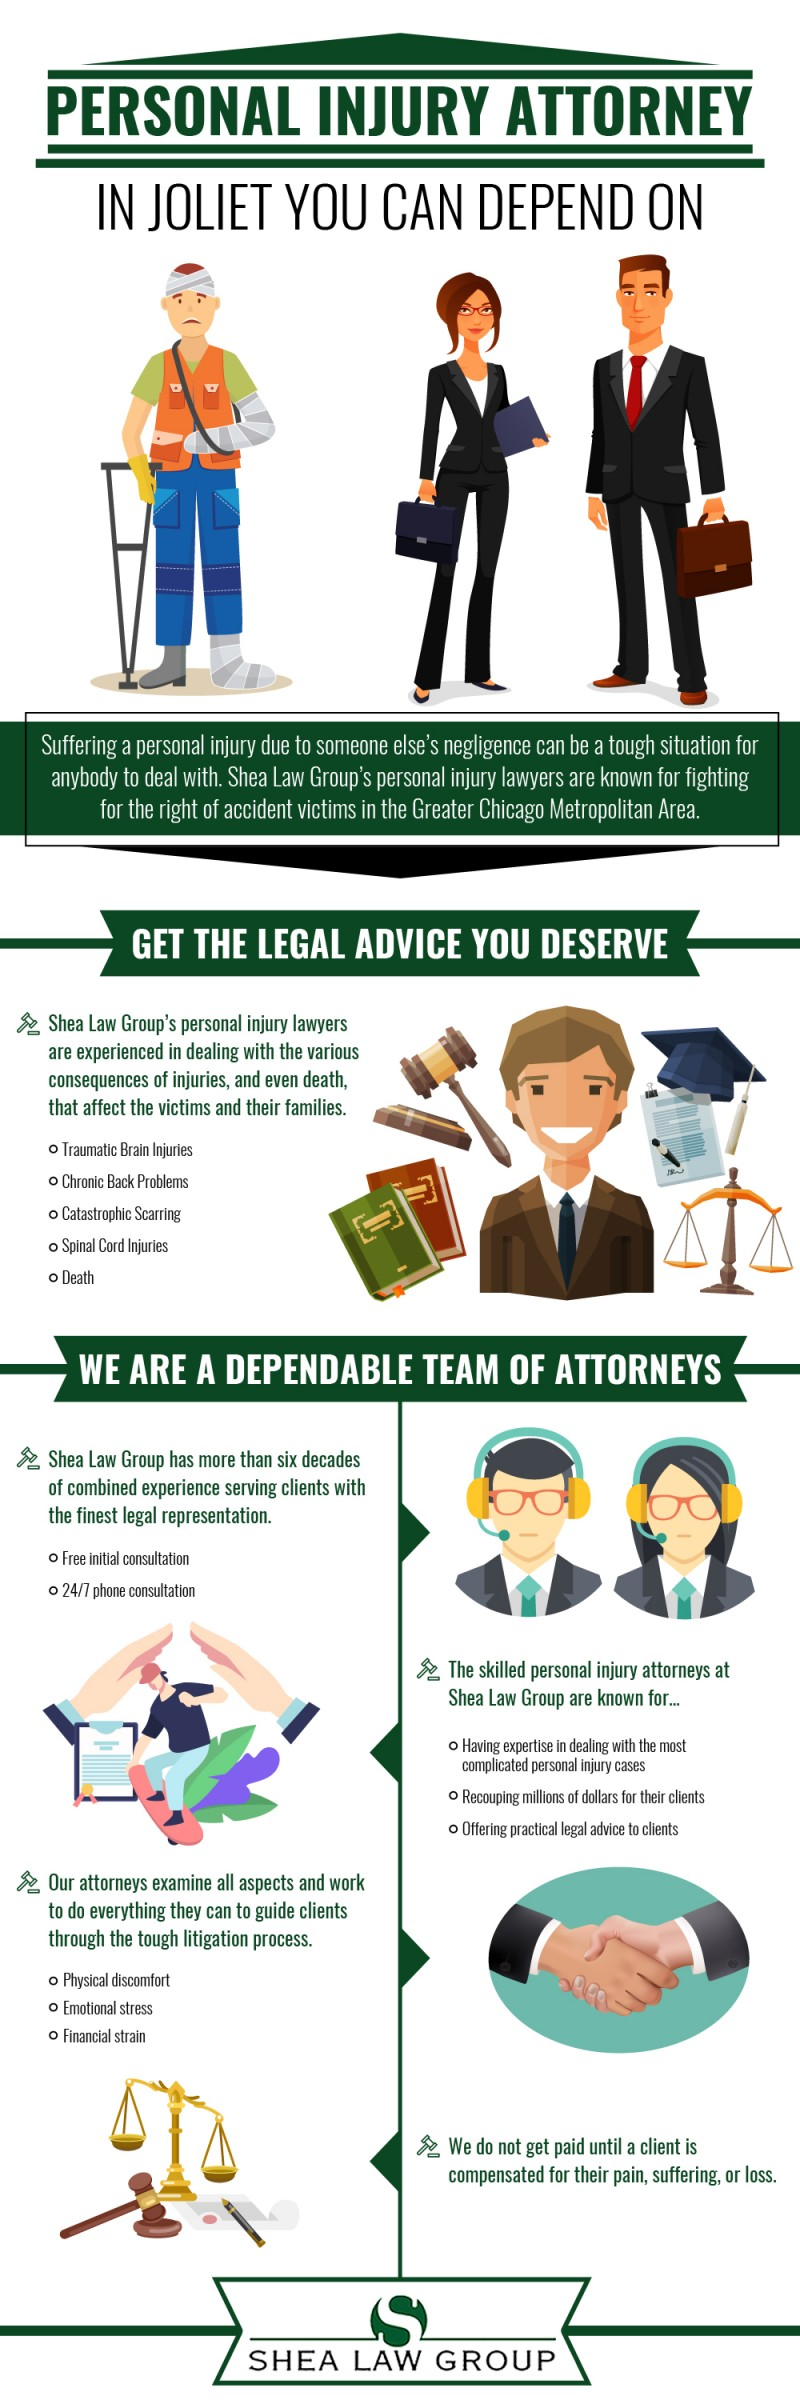 Personal Injury Attorney in Joliet You Can Depend On - Shea Law Group